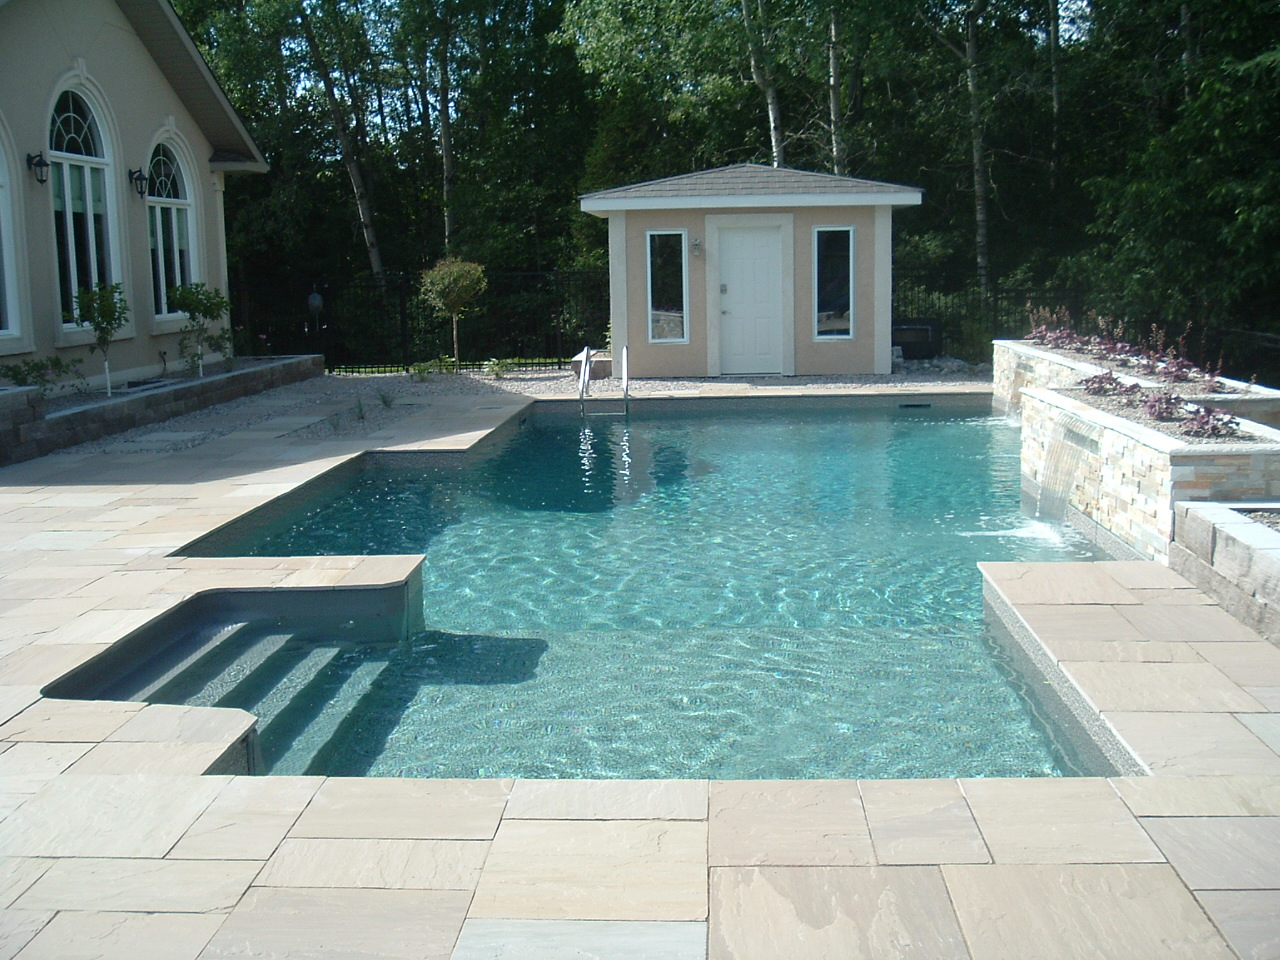 Vinyl Inground Swimming Pools For Ottawa Homes Poolarama